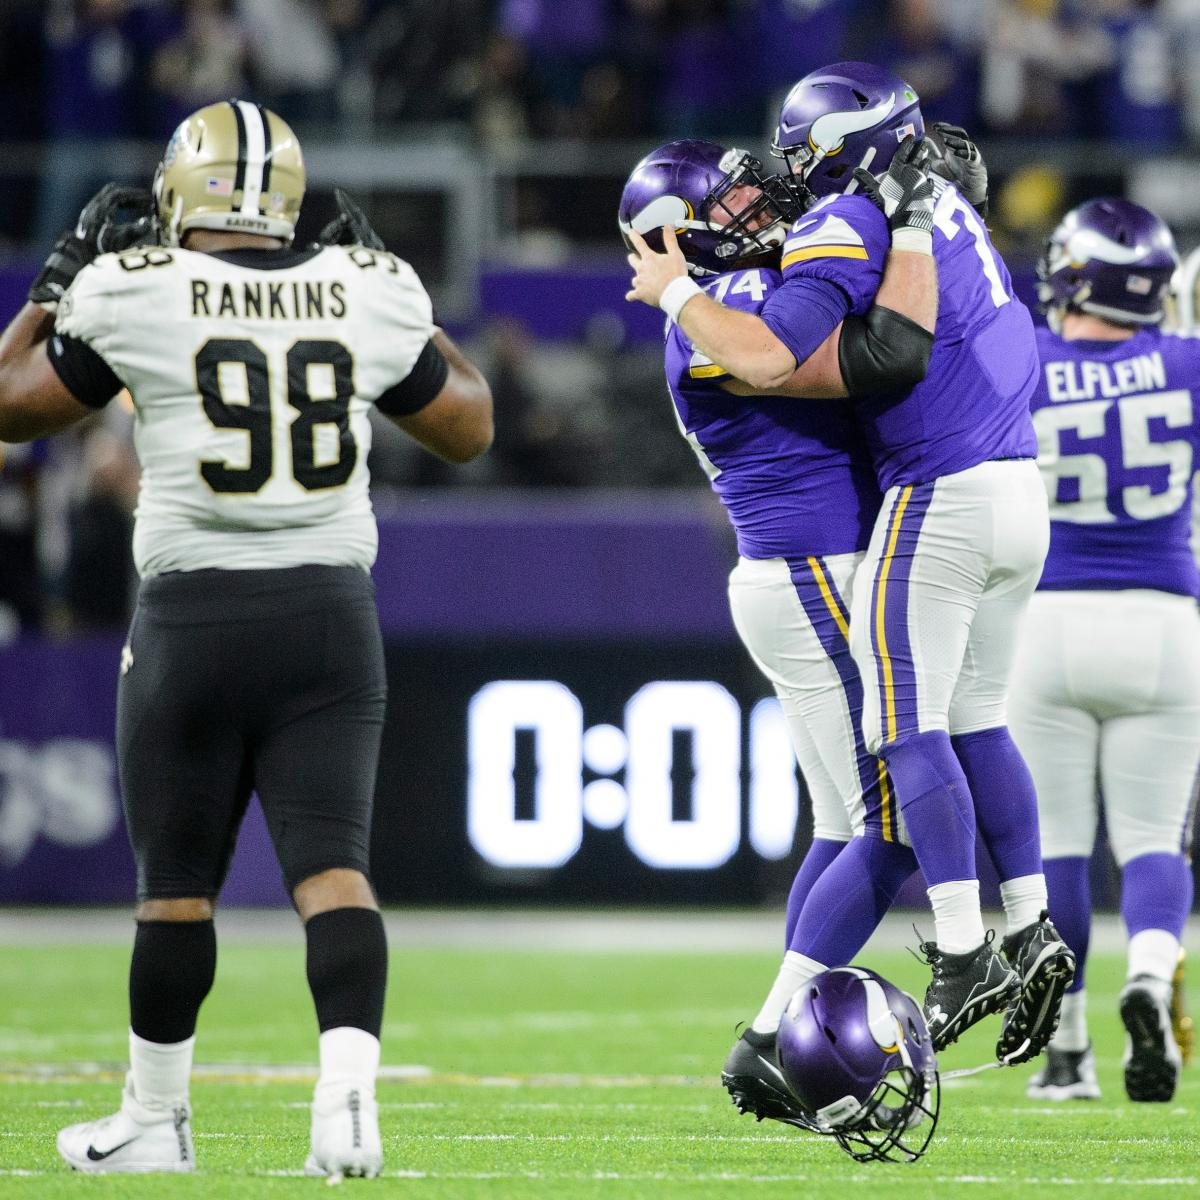 NFL Playoffs 2018: Schedule, Odds and Final Predictions for AFC, NFC Games